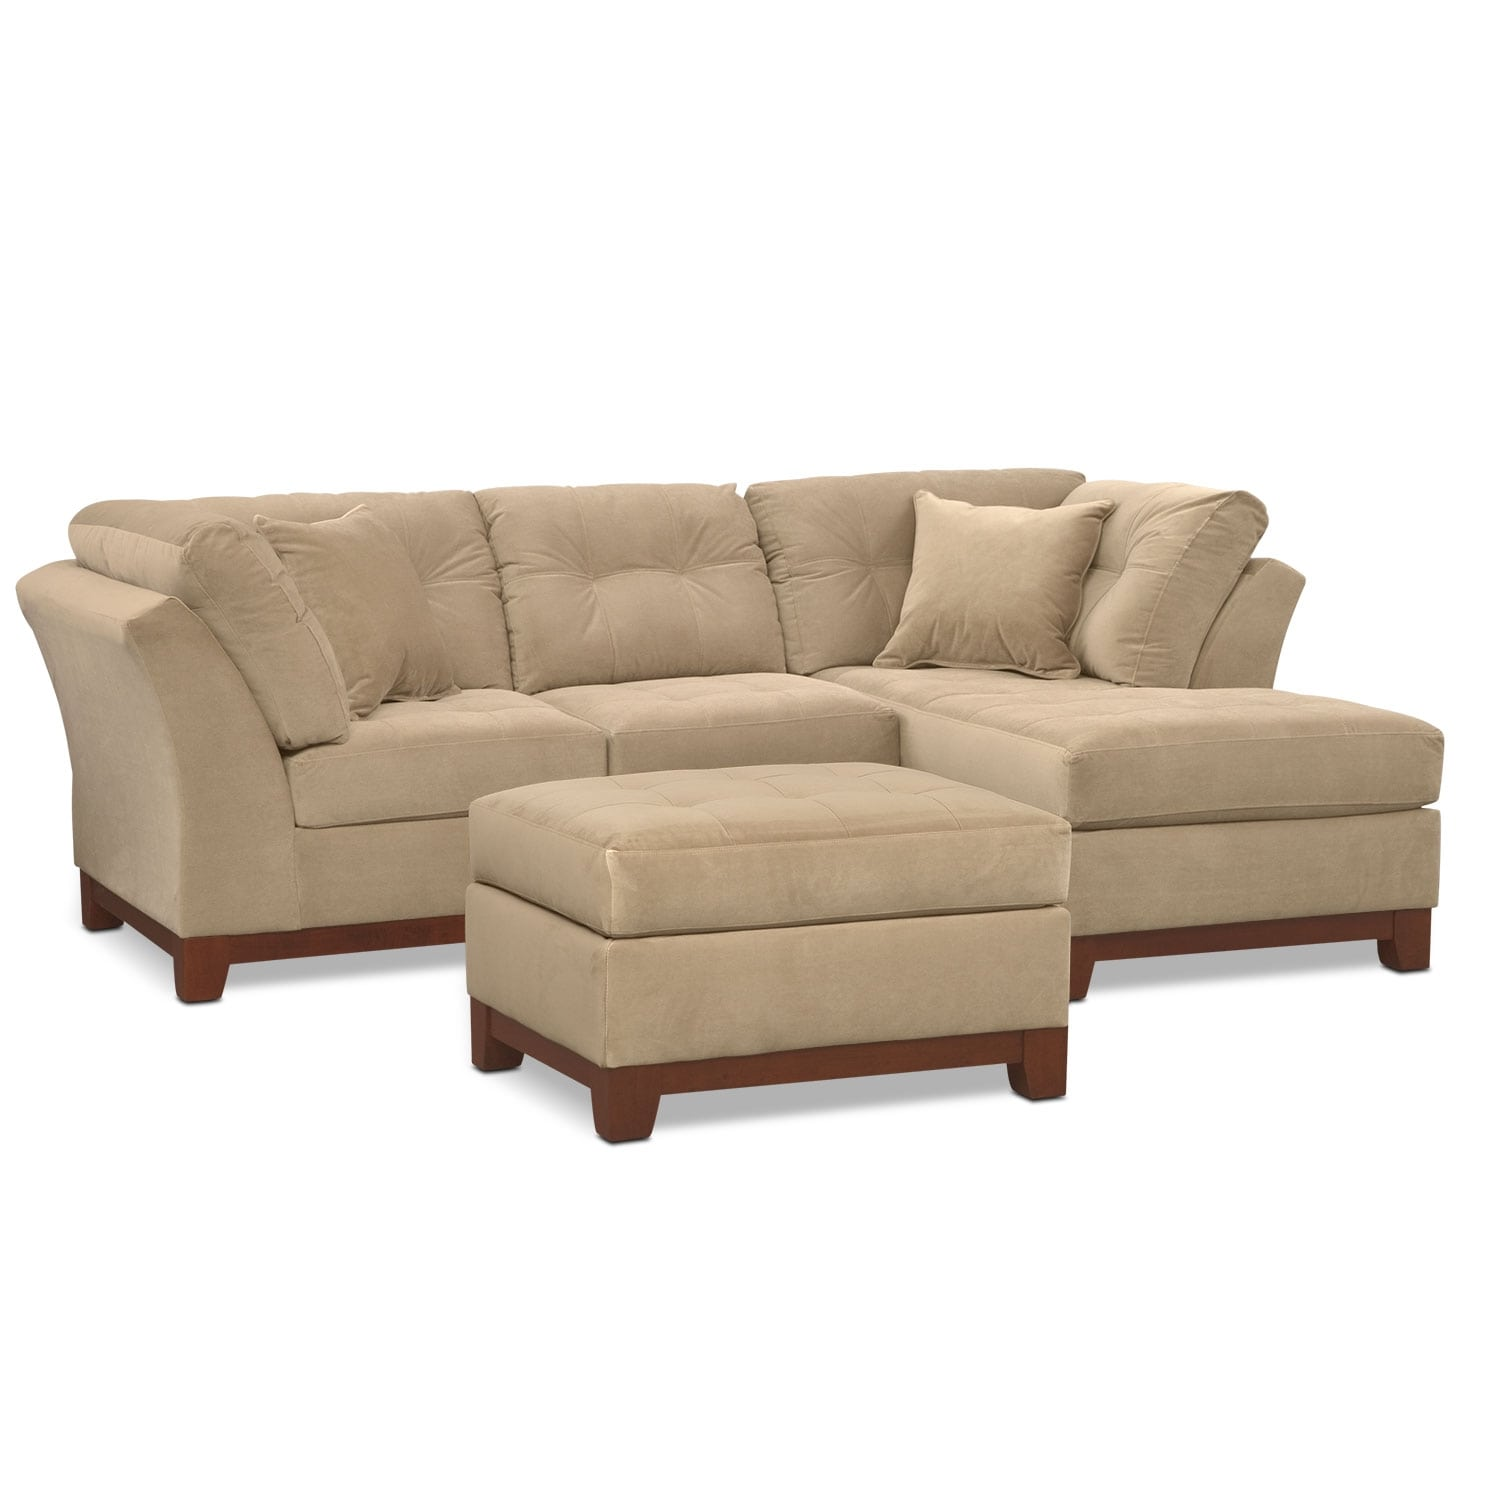 Living Room Furniture - Solace Cocoa II 2 Pc. Sectional (Alternate Reverse) and Ottoman